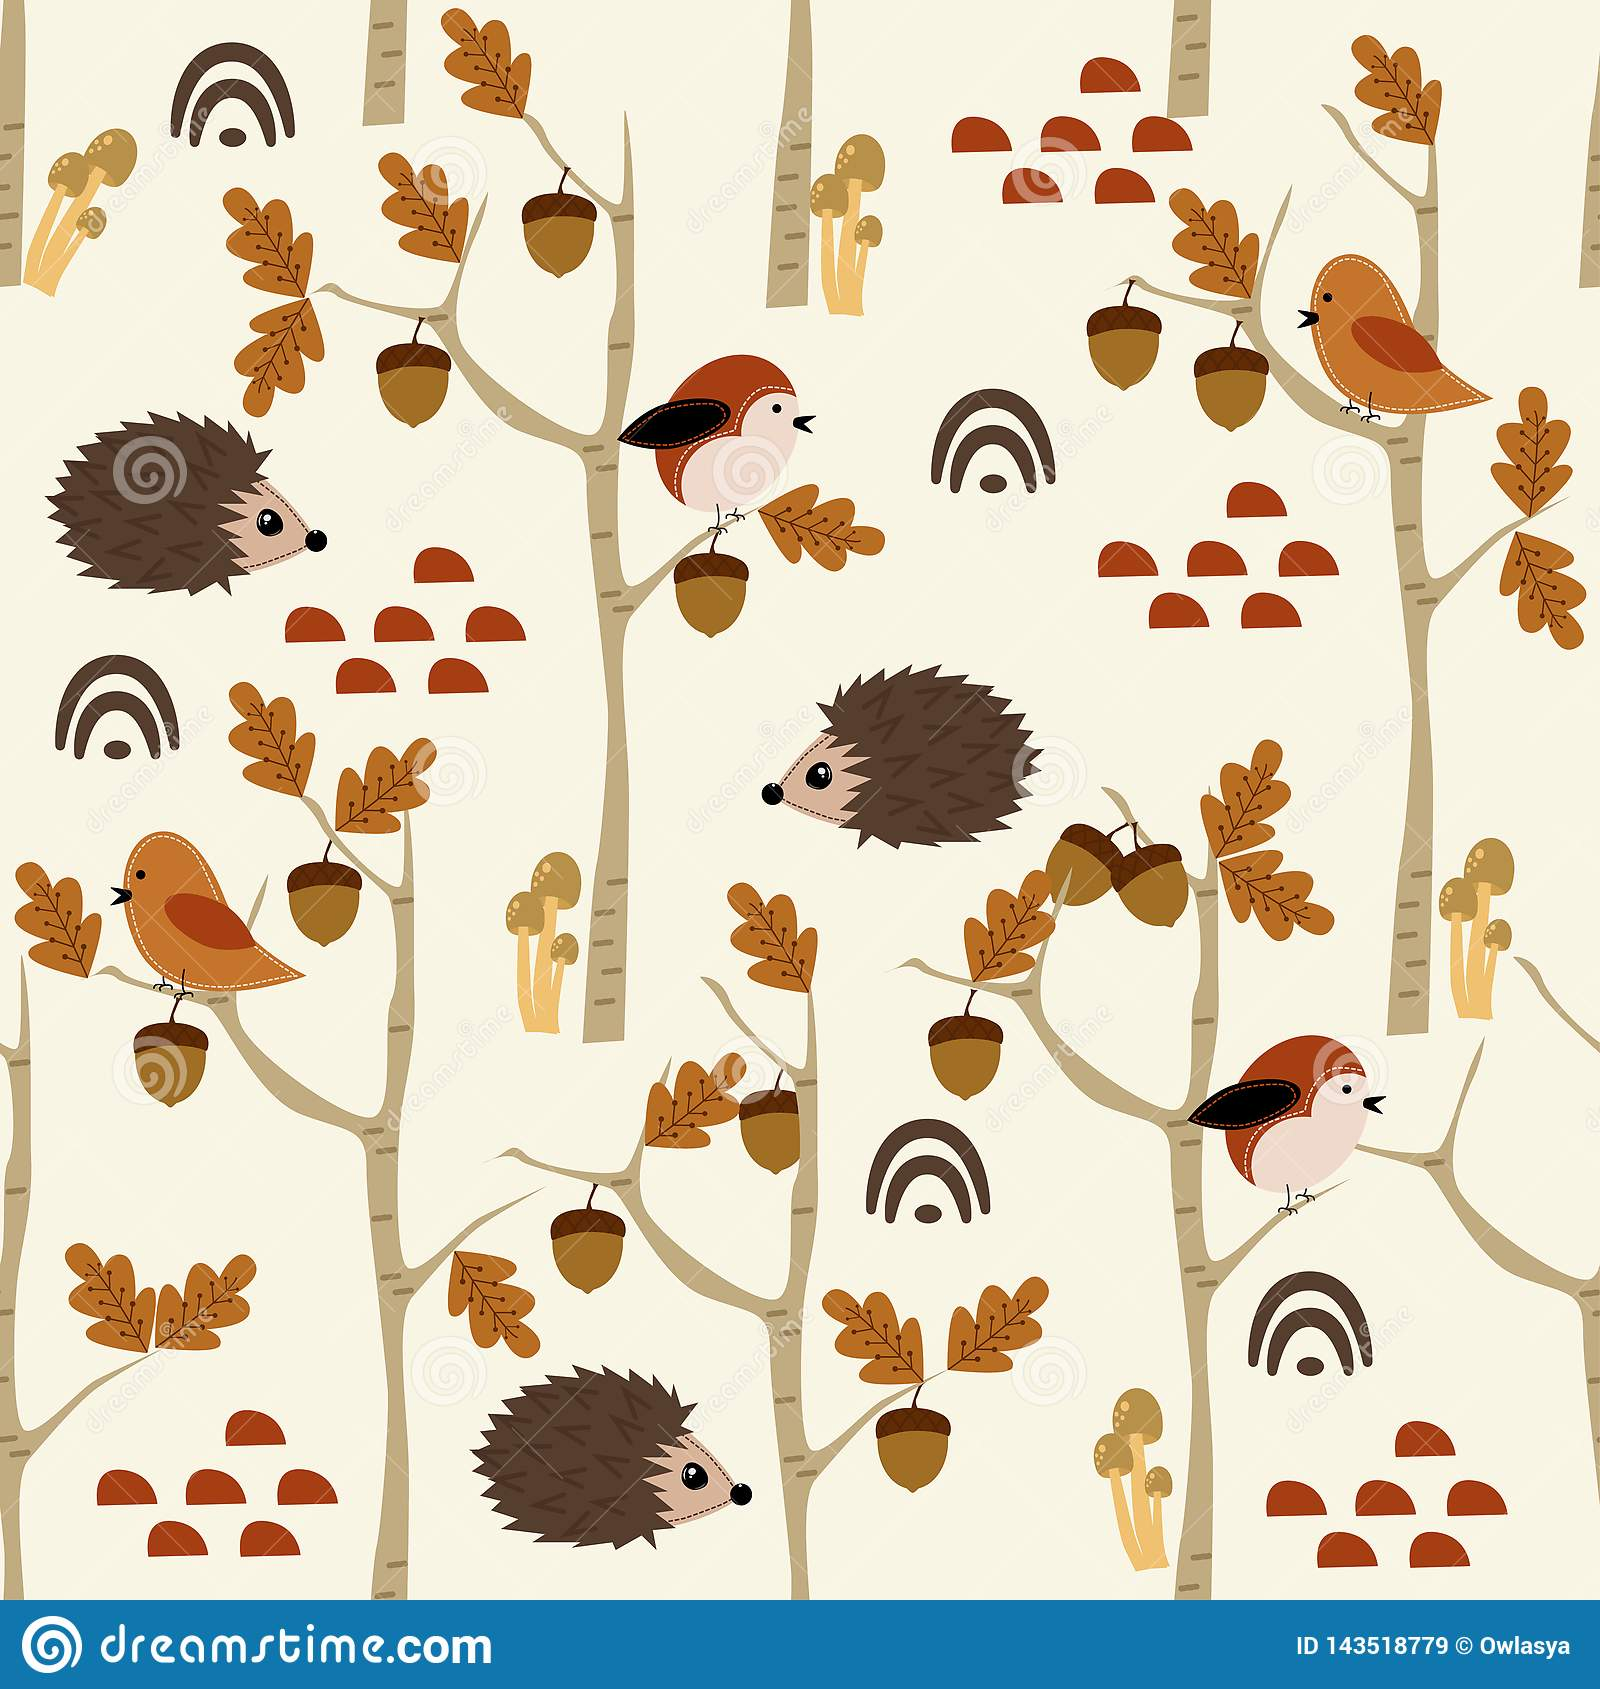 Seamless pattern with hedgehog and acorn in forest - vector illustration, eps